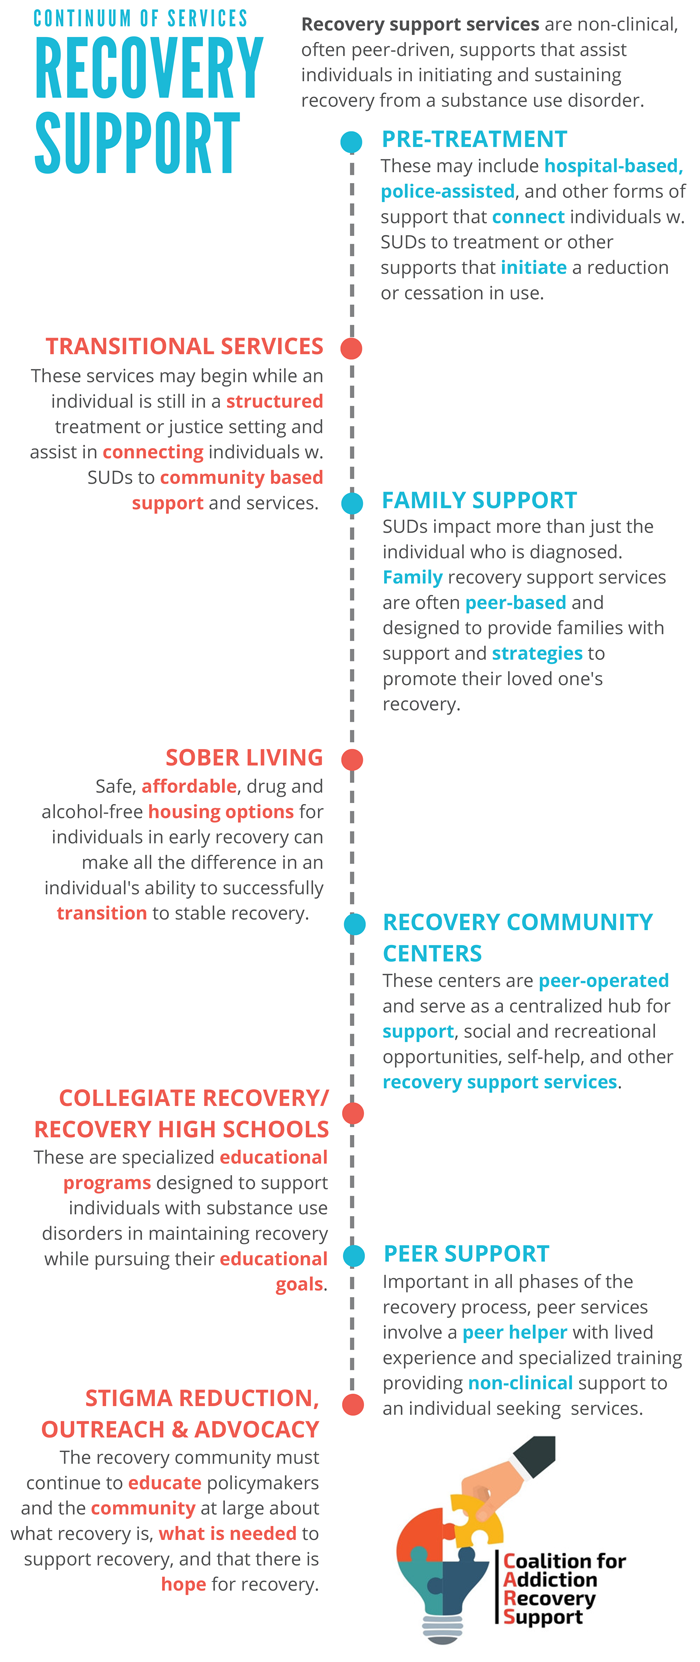 Continuum of Services Recovery Support